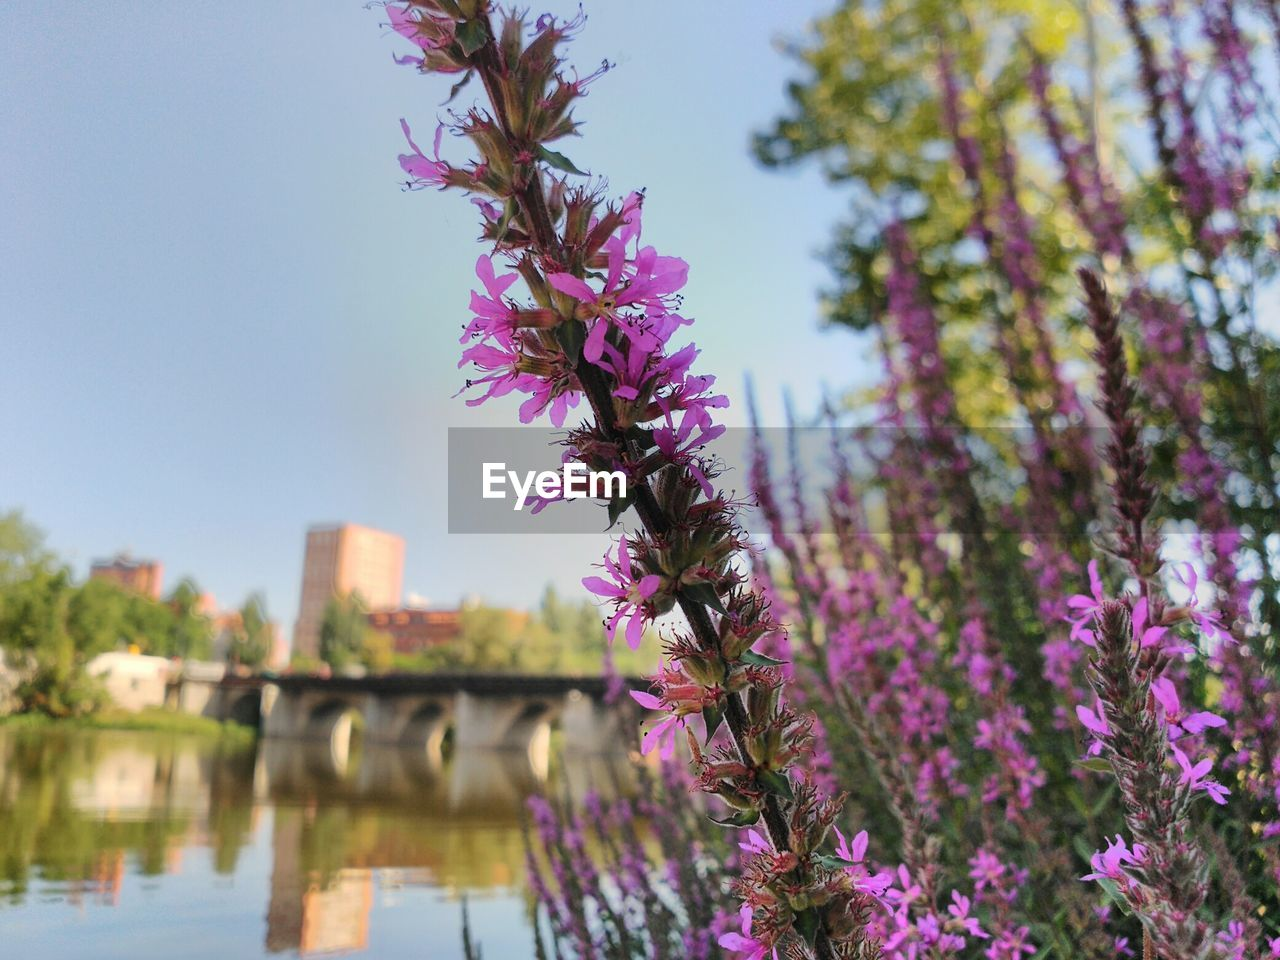 architecture, built structure, flower, outdoors, growth, day, focus on foreground, nature, building exterior, no people, purple, beauty in nature, fragility, tree, bridge - man made structure, water, sky, branch, close-up, freshness